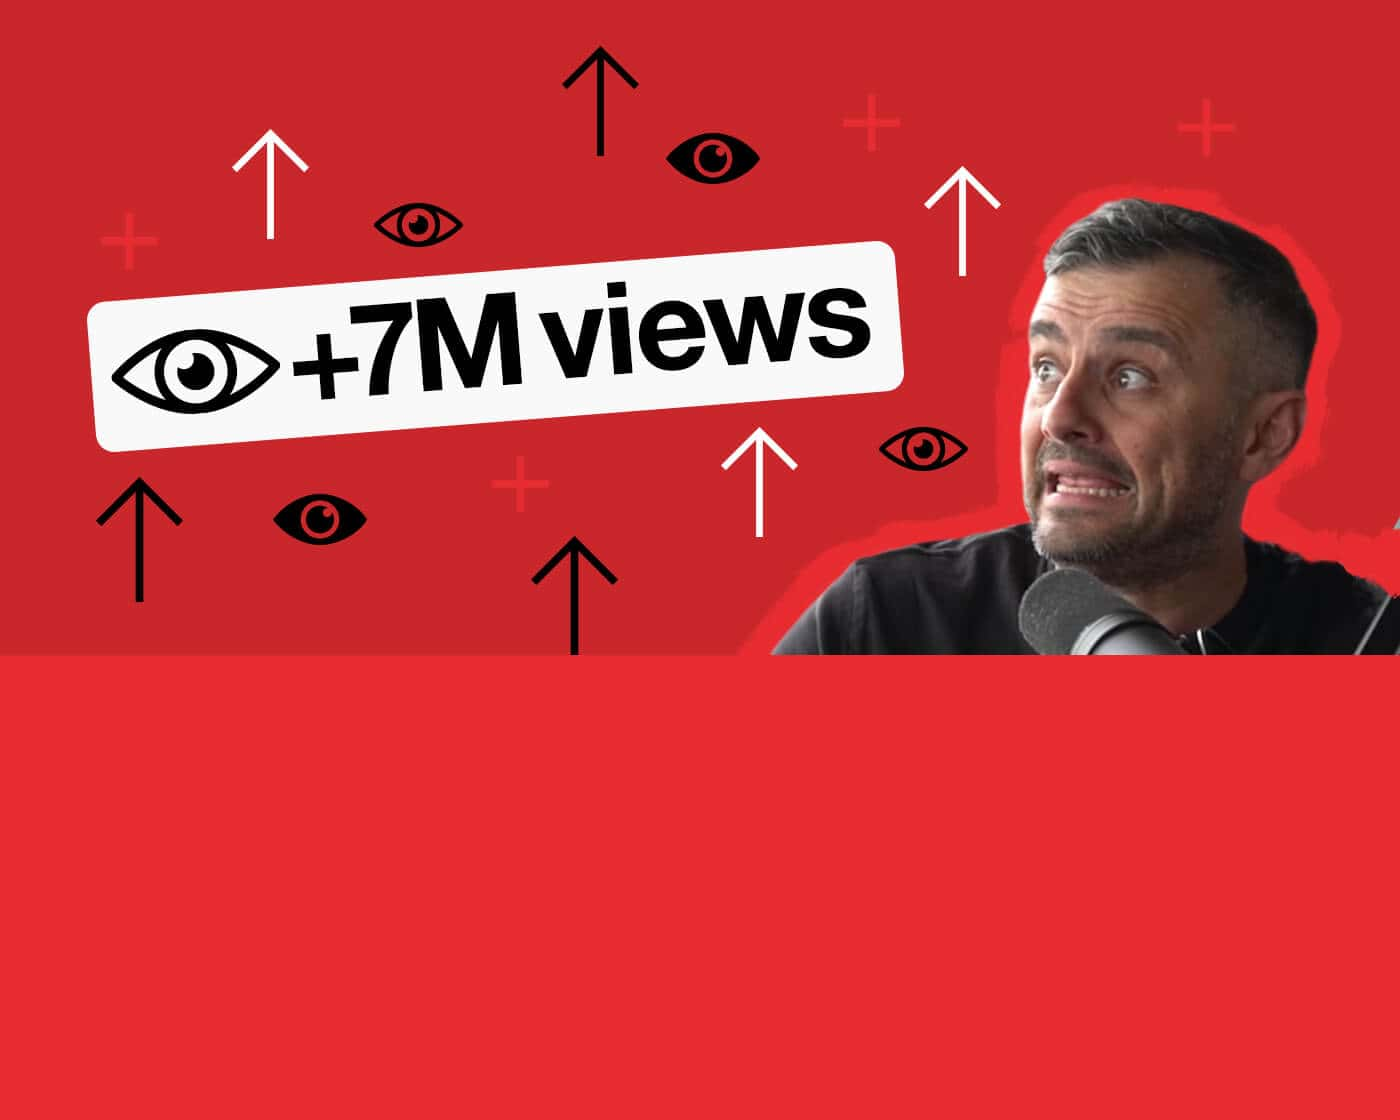 An Unconventional Content Marketing Strategy Getting 7m Views